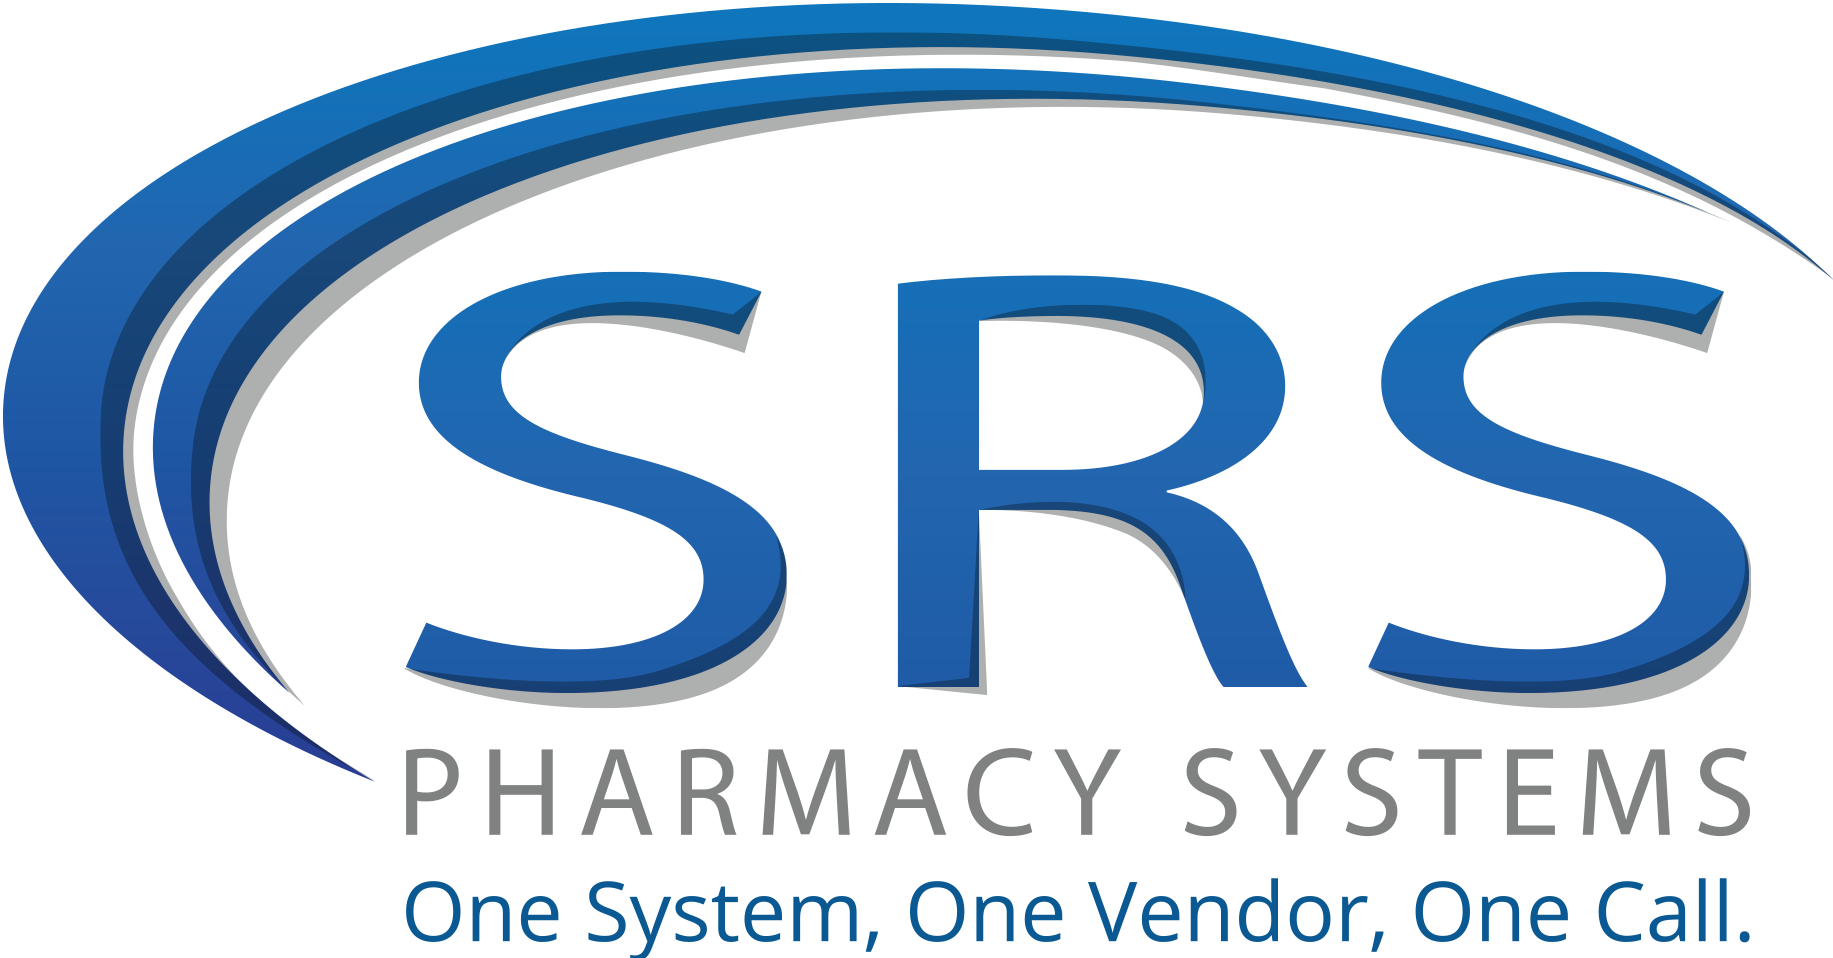 2020 Buyers Guide Logos SRS Pharmacy Systems logo